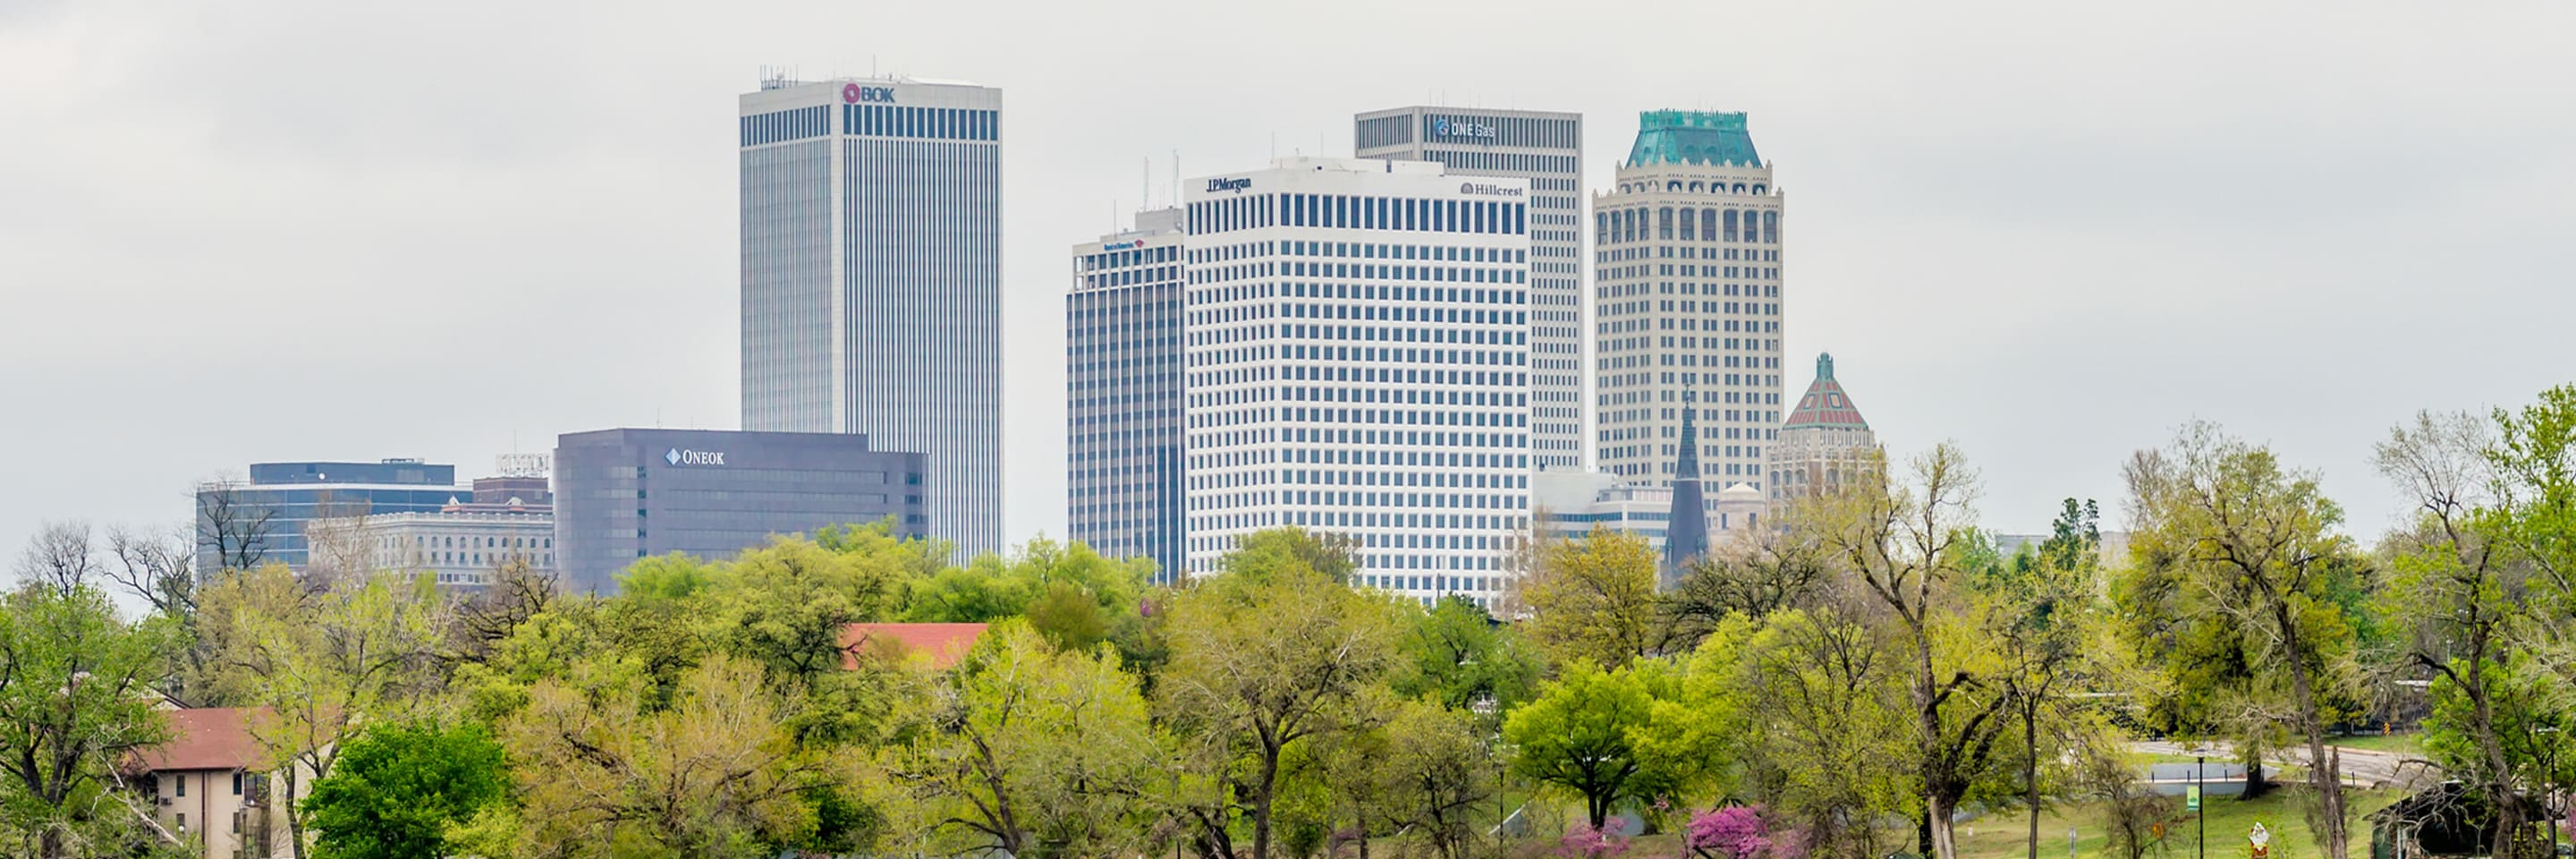 Hotels in Tulsa